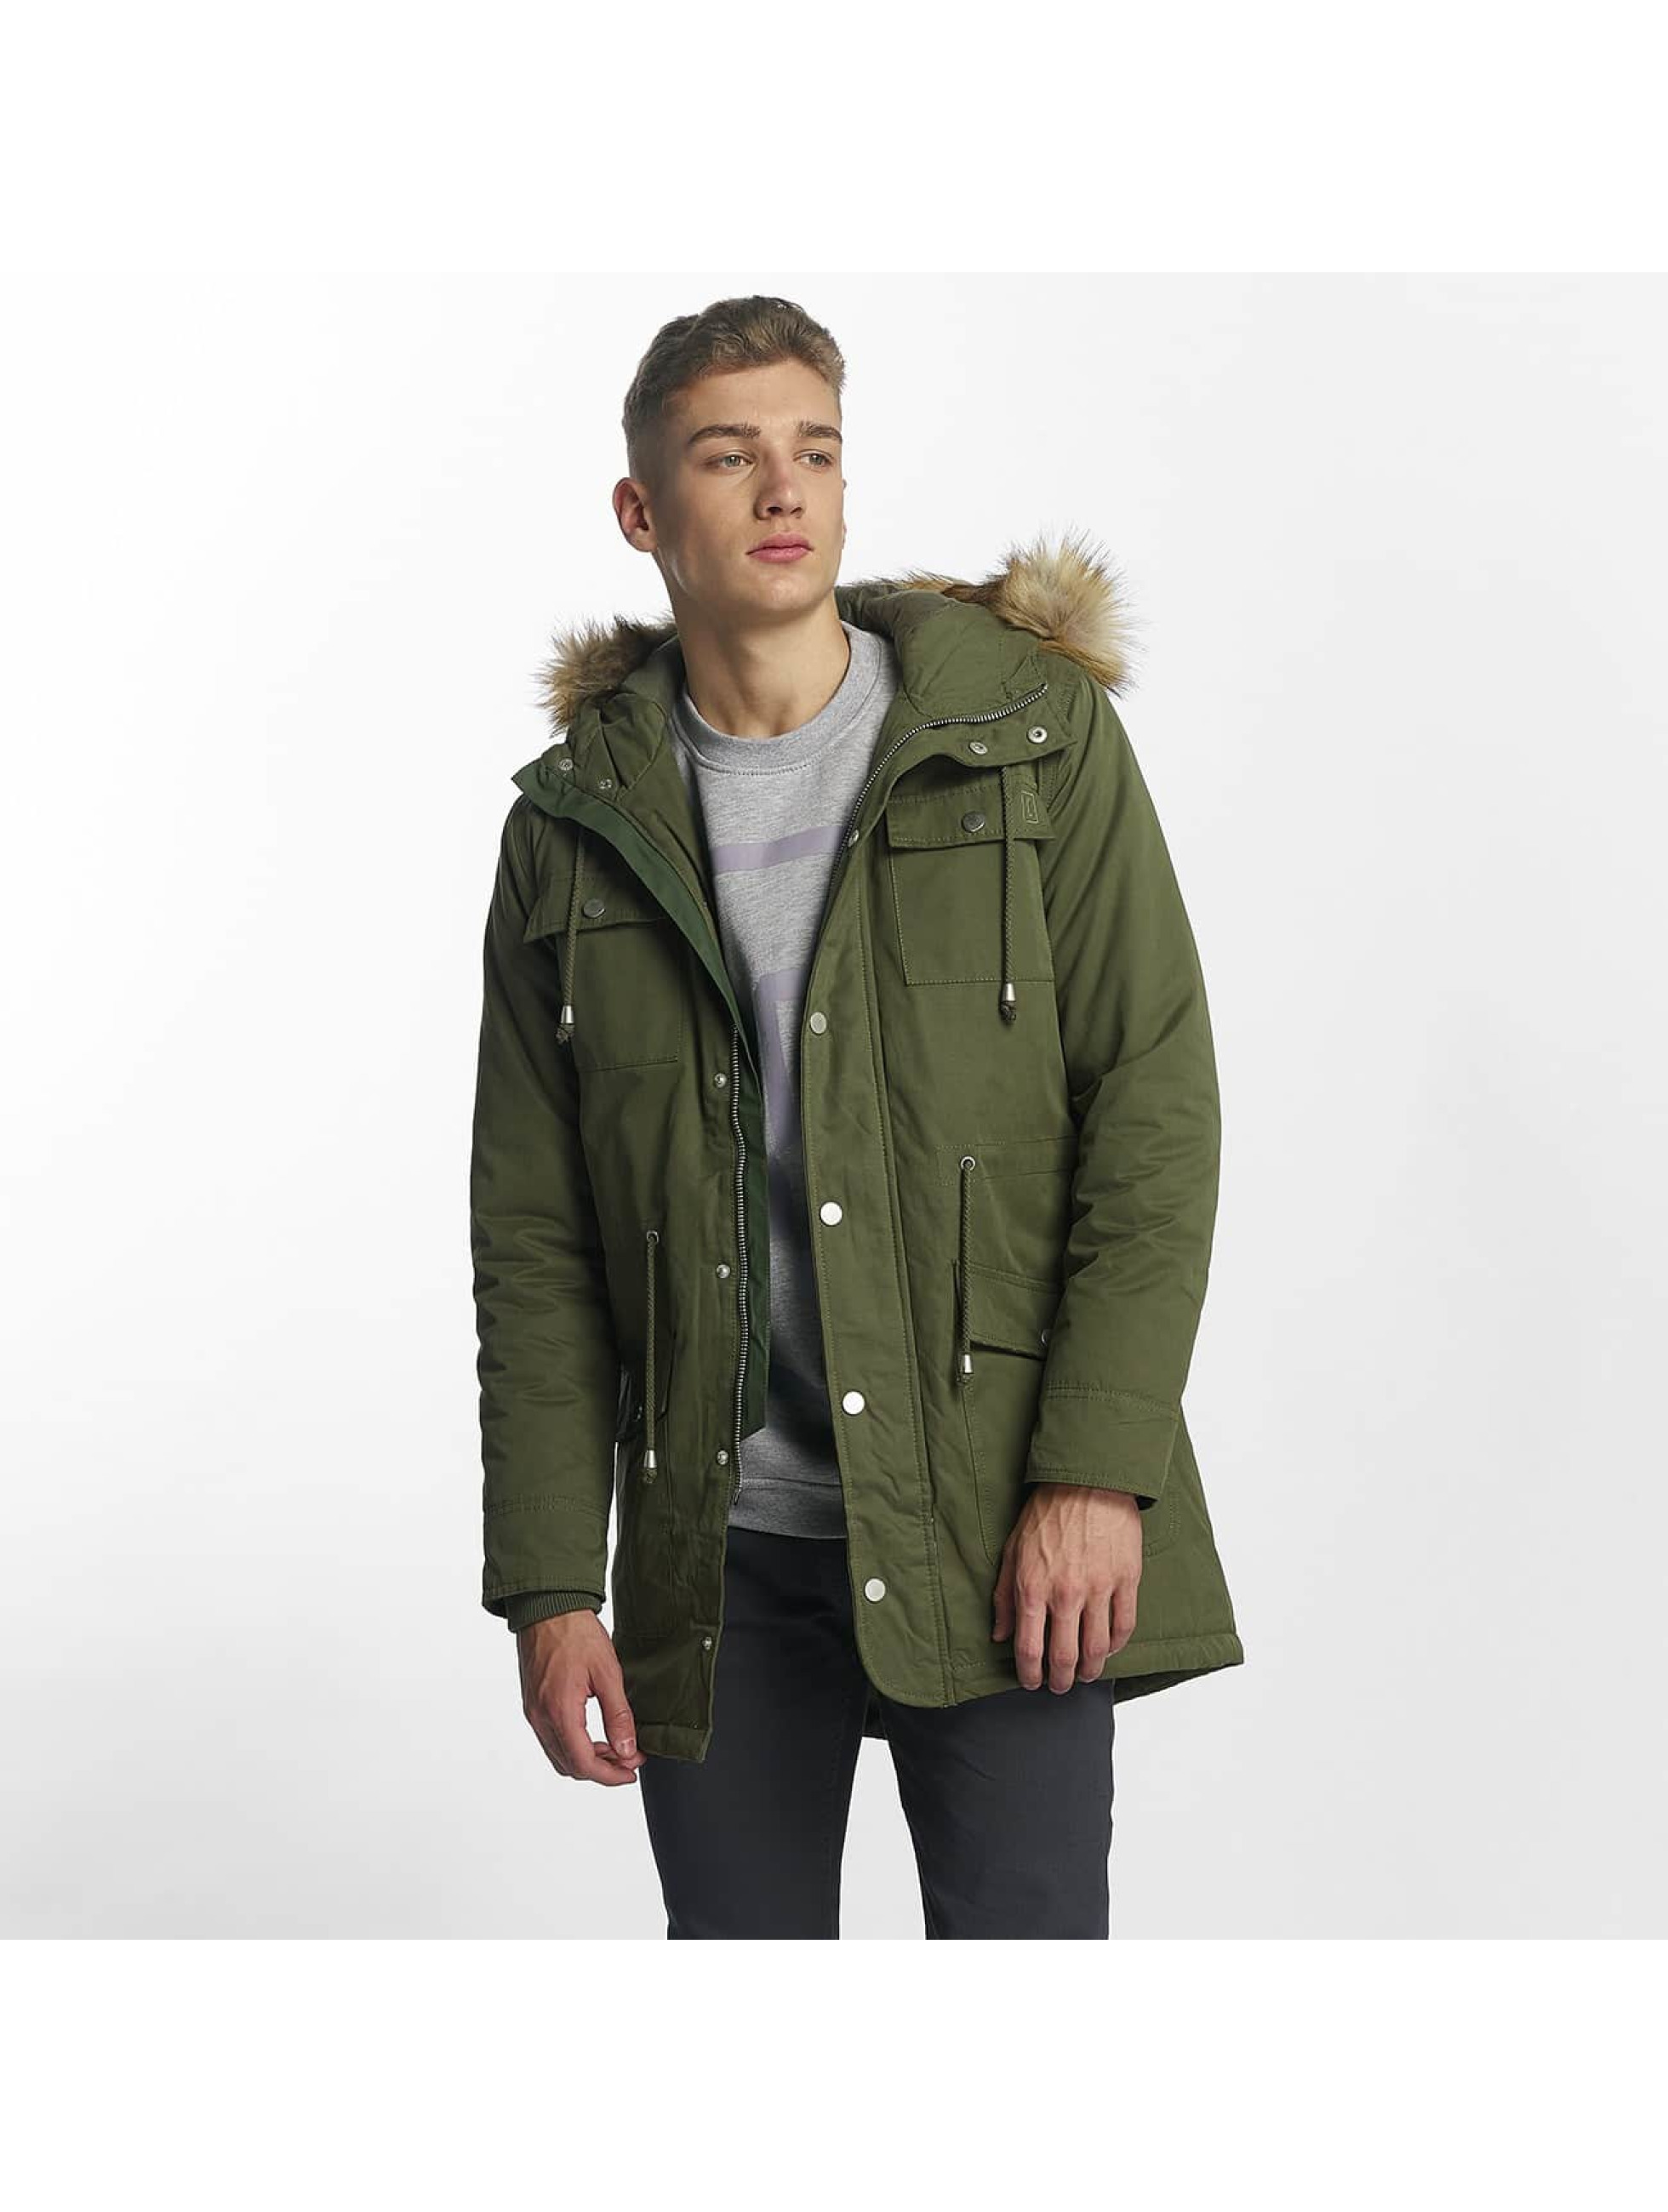 Cyprime / Winter Jacket Neptunium in olive S